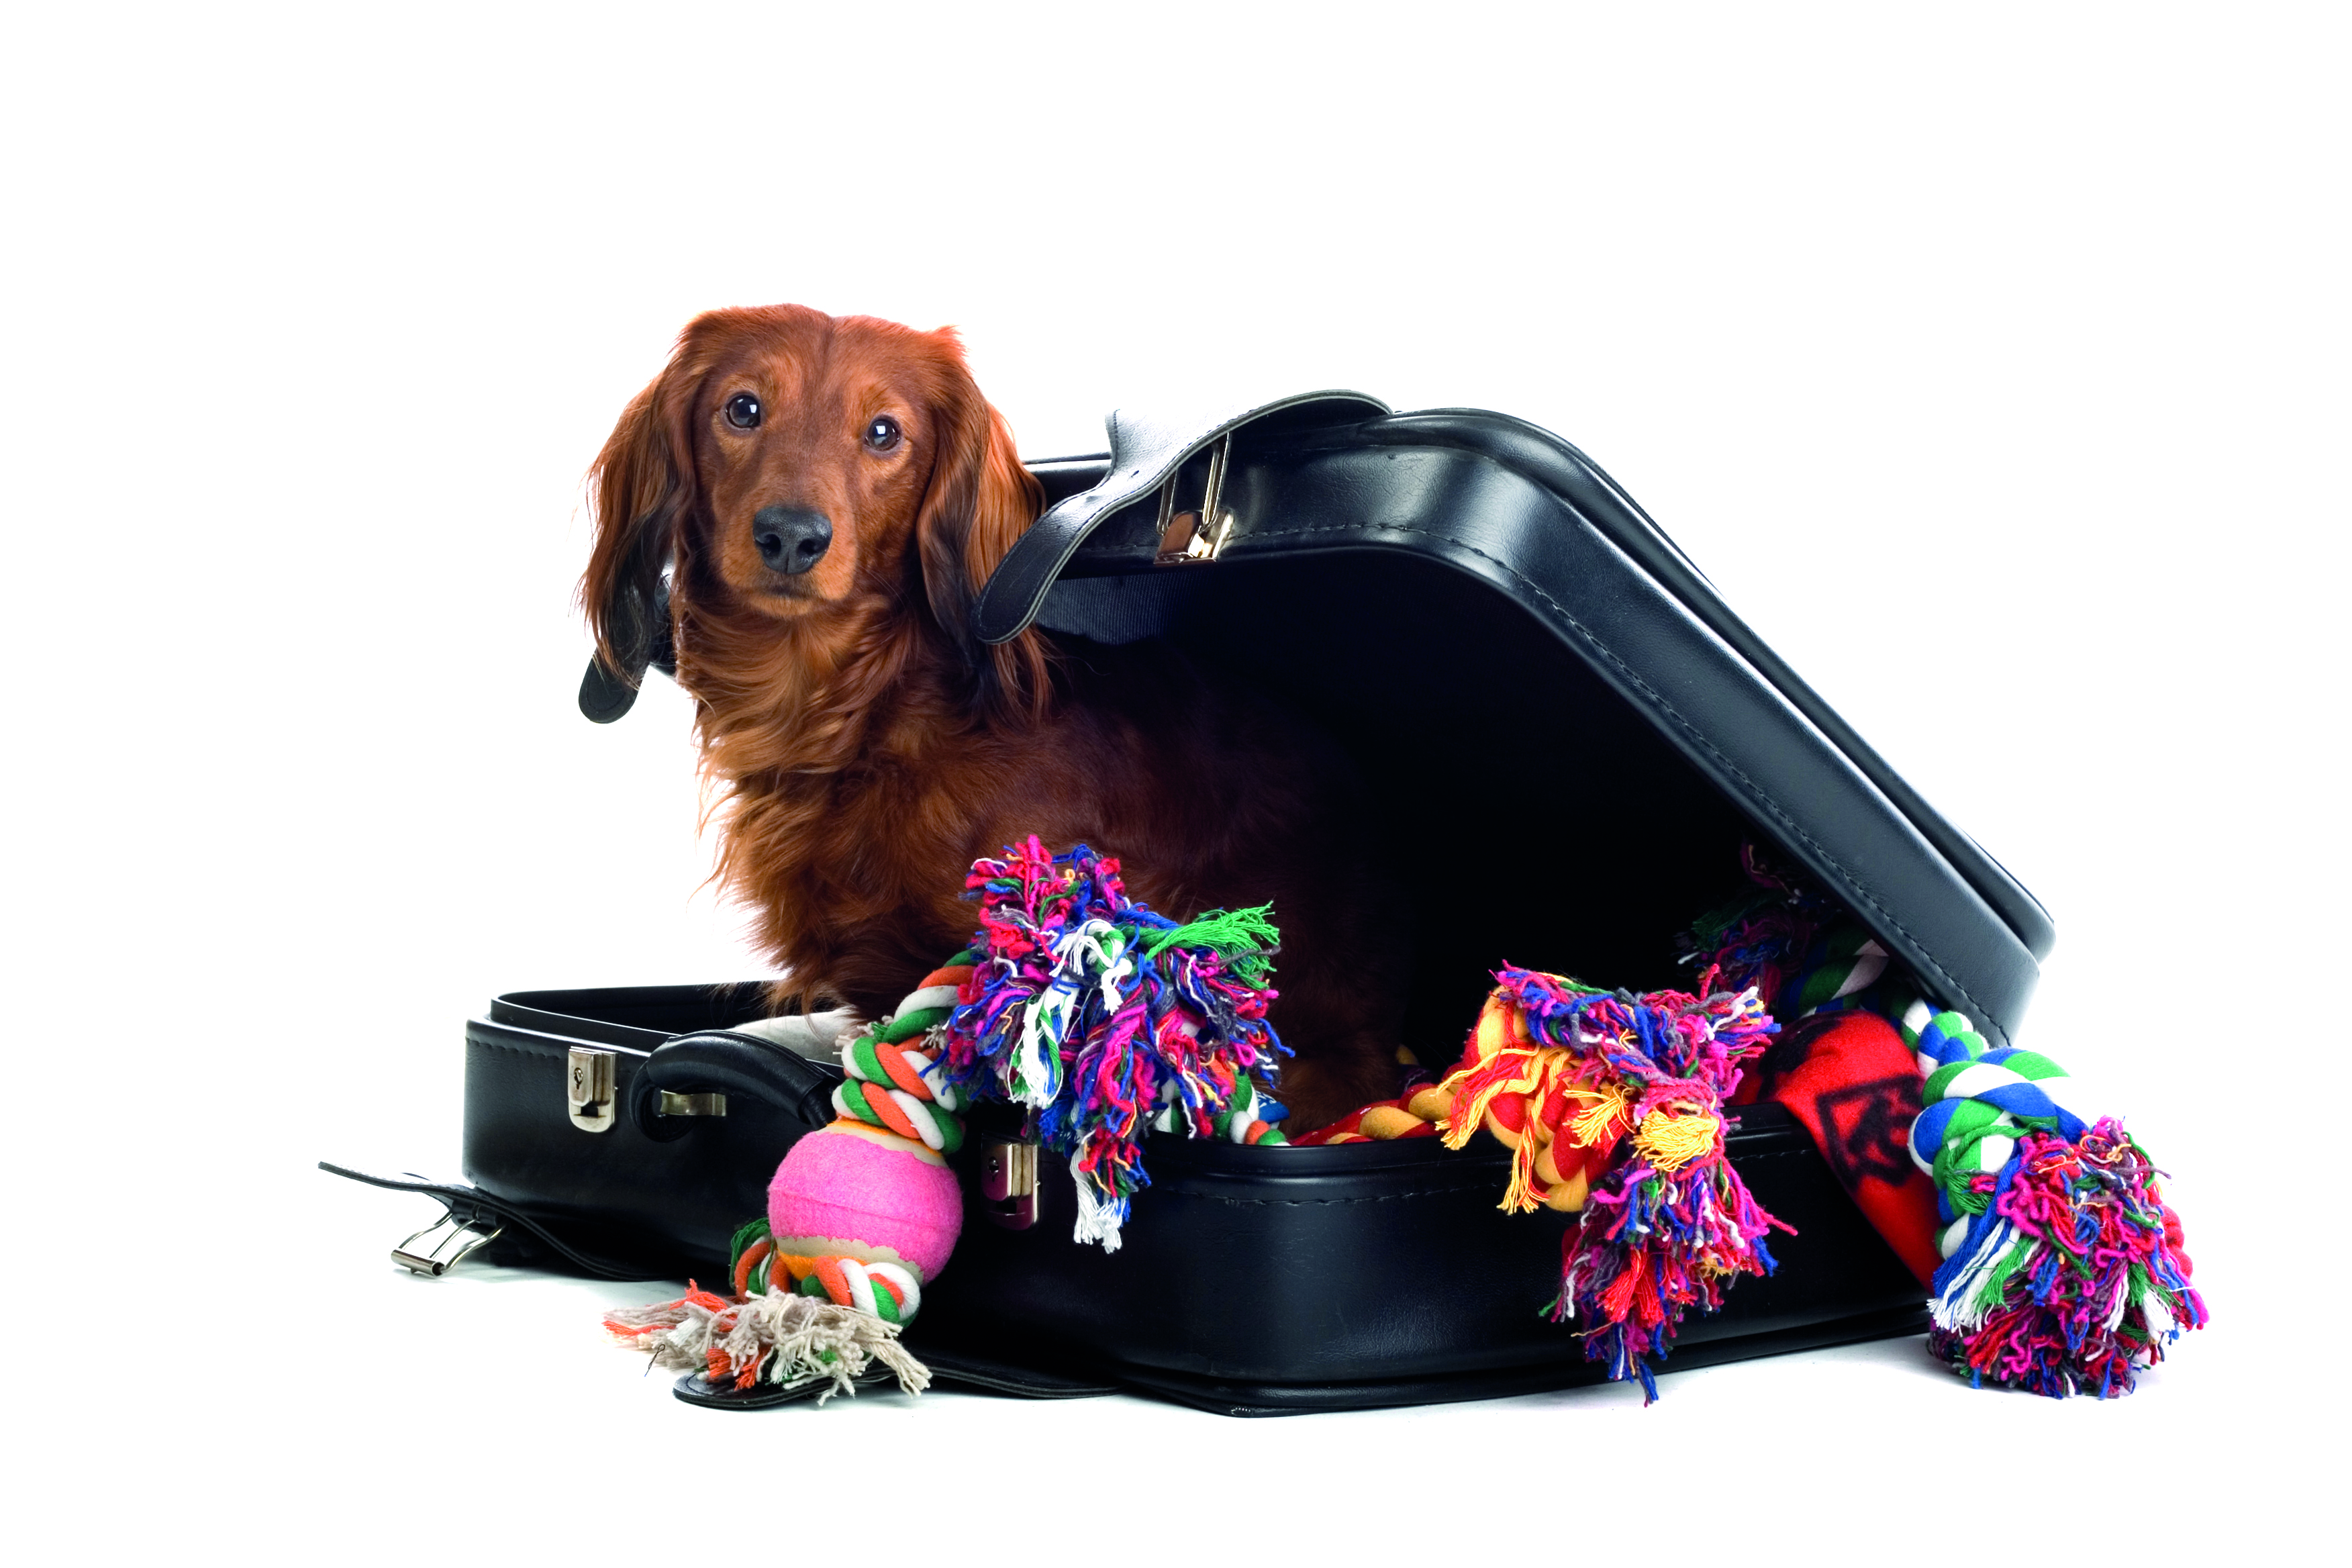 My things are packed, i'm going with my humans! emigration Emigrating with your pets - it's not as hard as you think Emigration